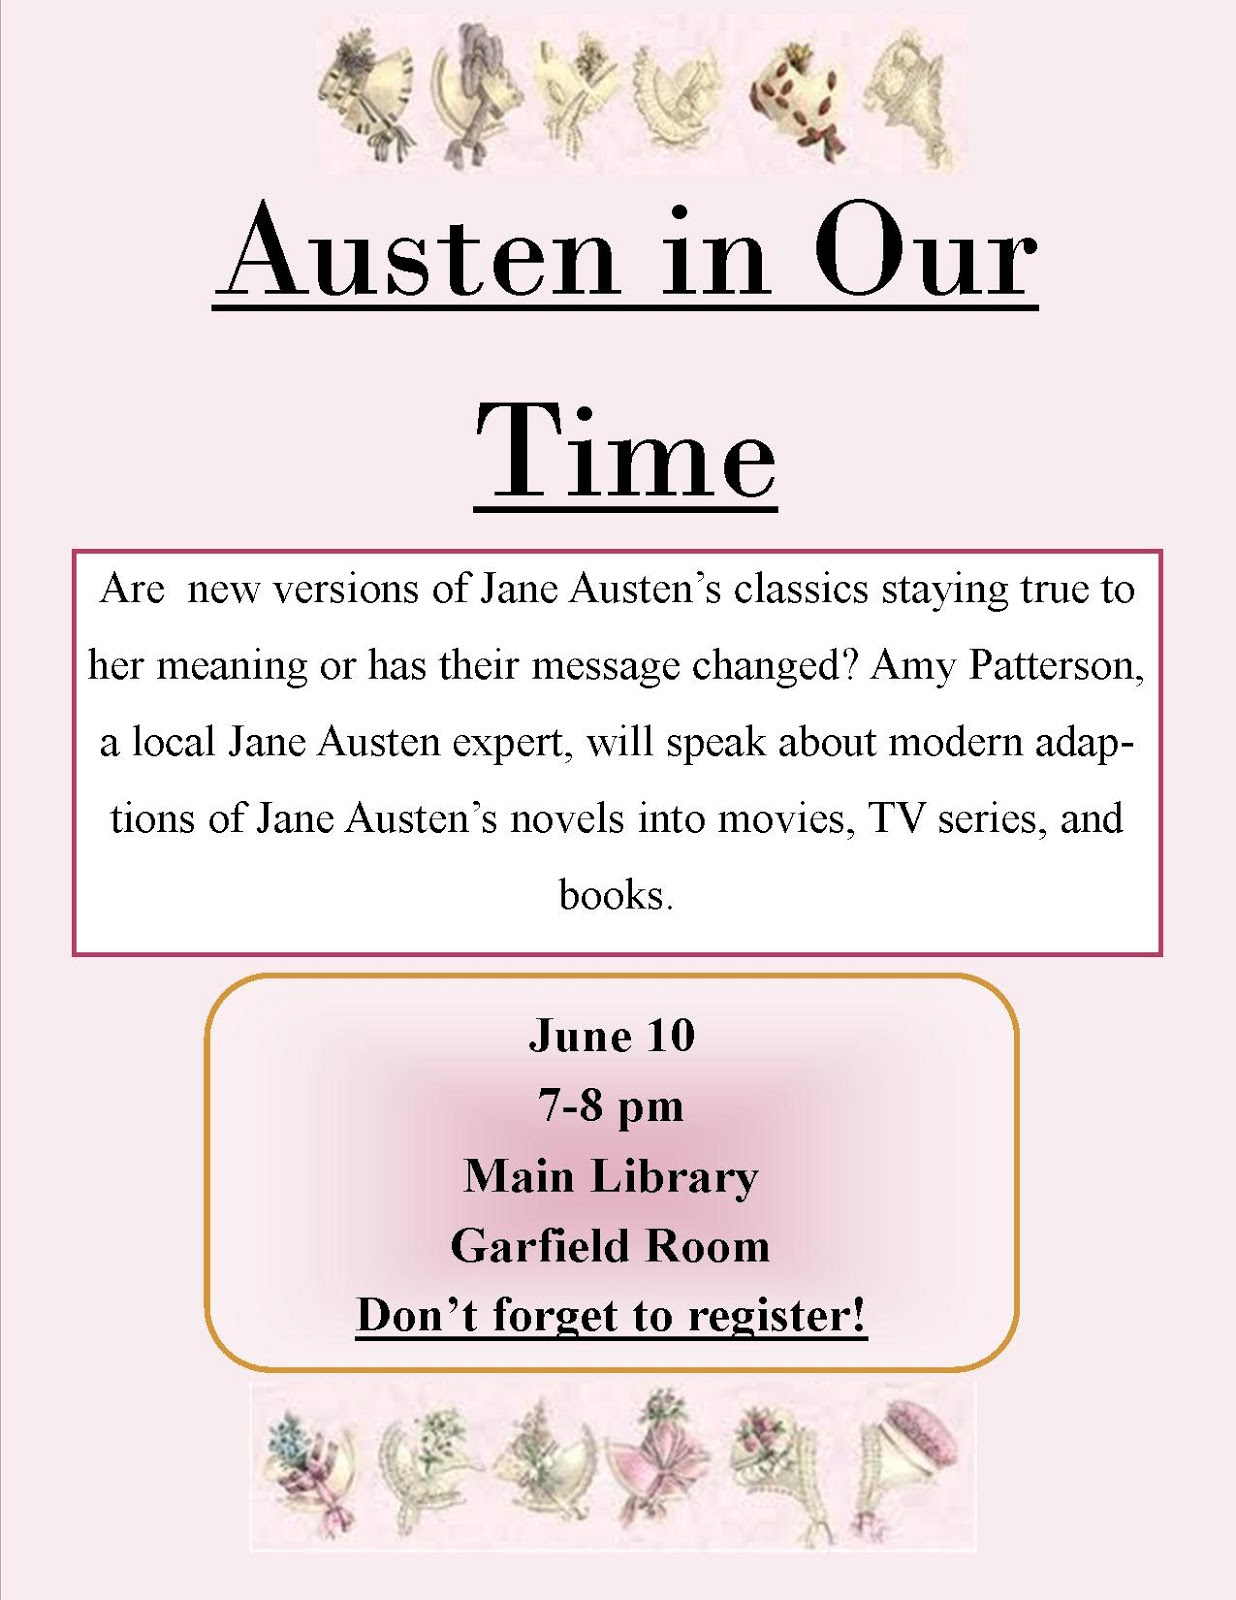 what do we learn about jane austens society in these chapters? essay Manners and etiquette of pride and prejudice essay sample in 19th century england, manners played a big role in her book pride and prejudice, jane austen portrays many different aspects of english social manners in the 1800s, and these facets of english etiquette, including traveling etiquette, social propriety, and dancing, greatly affect the plot of the book.